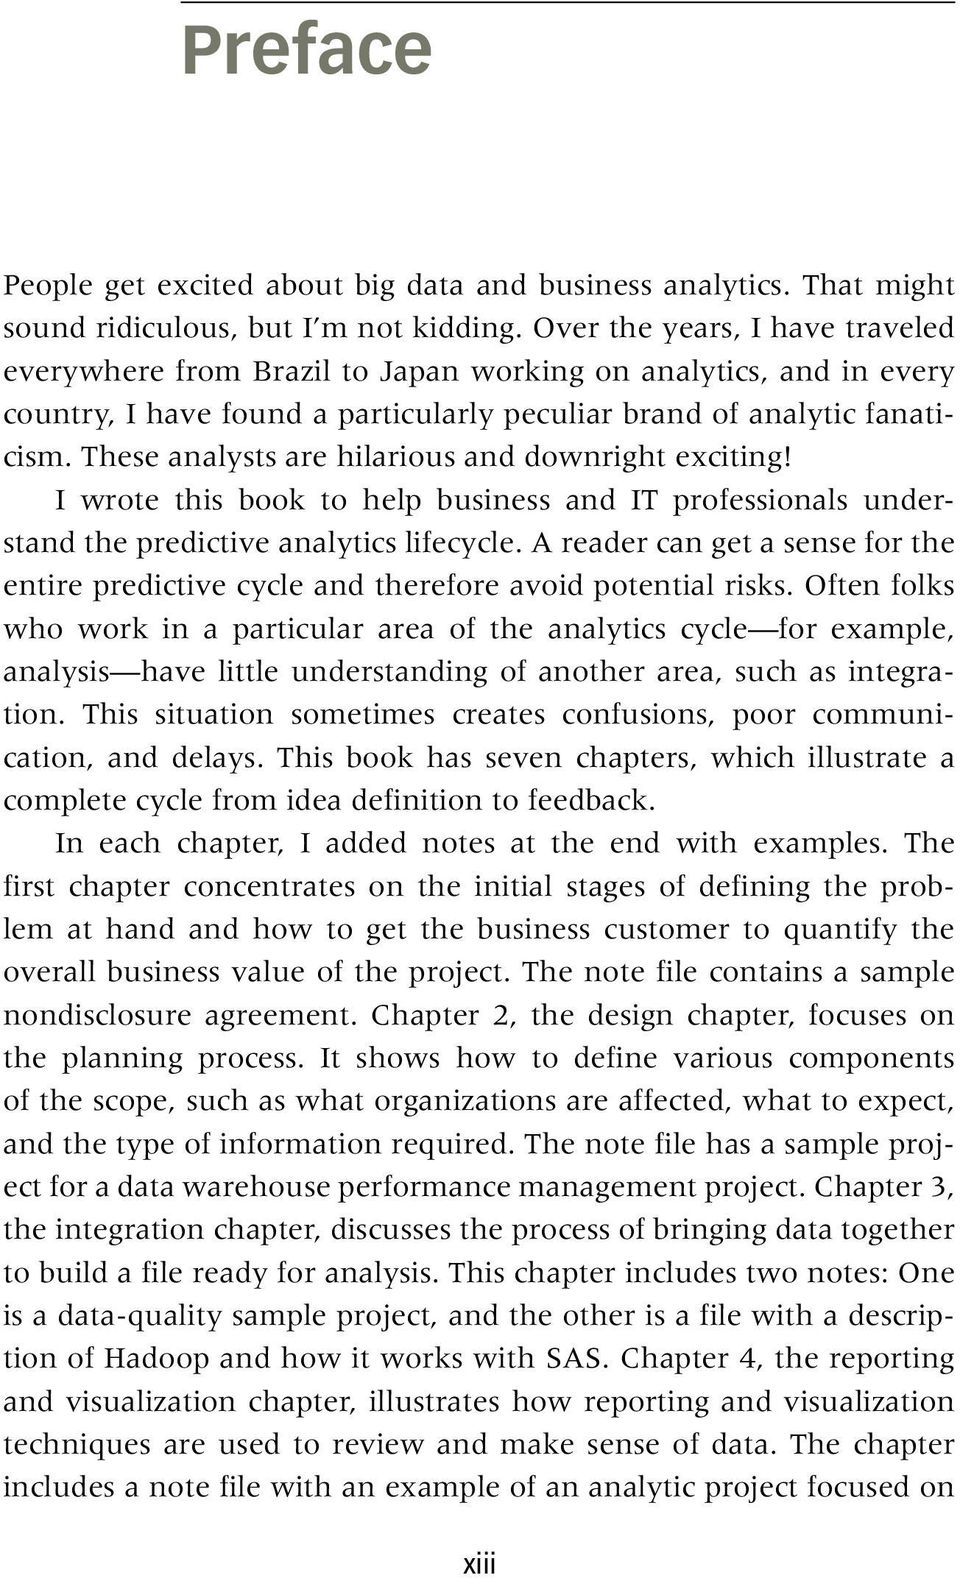 These analysts are hilarious and downright exciting! I wrote this book to help business and IT professionals understand the predictive analytics lifecycle.